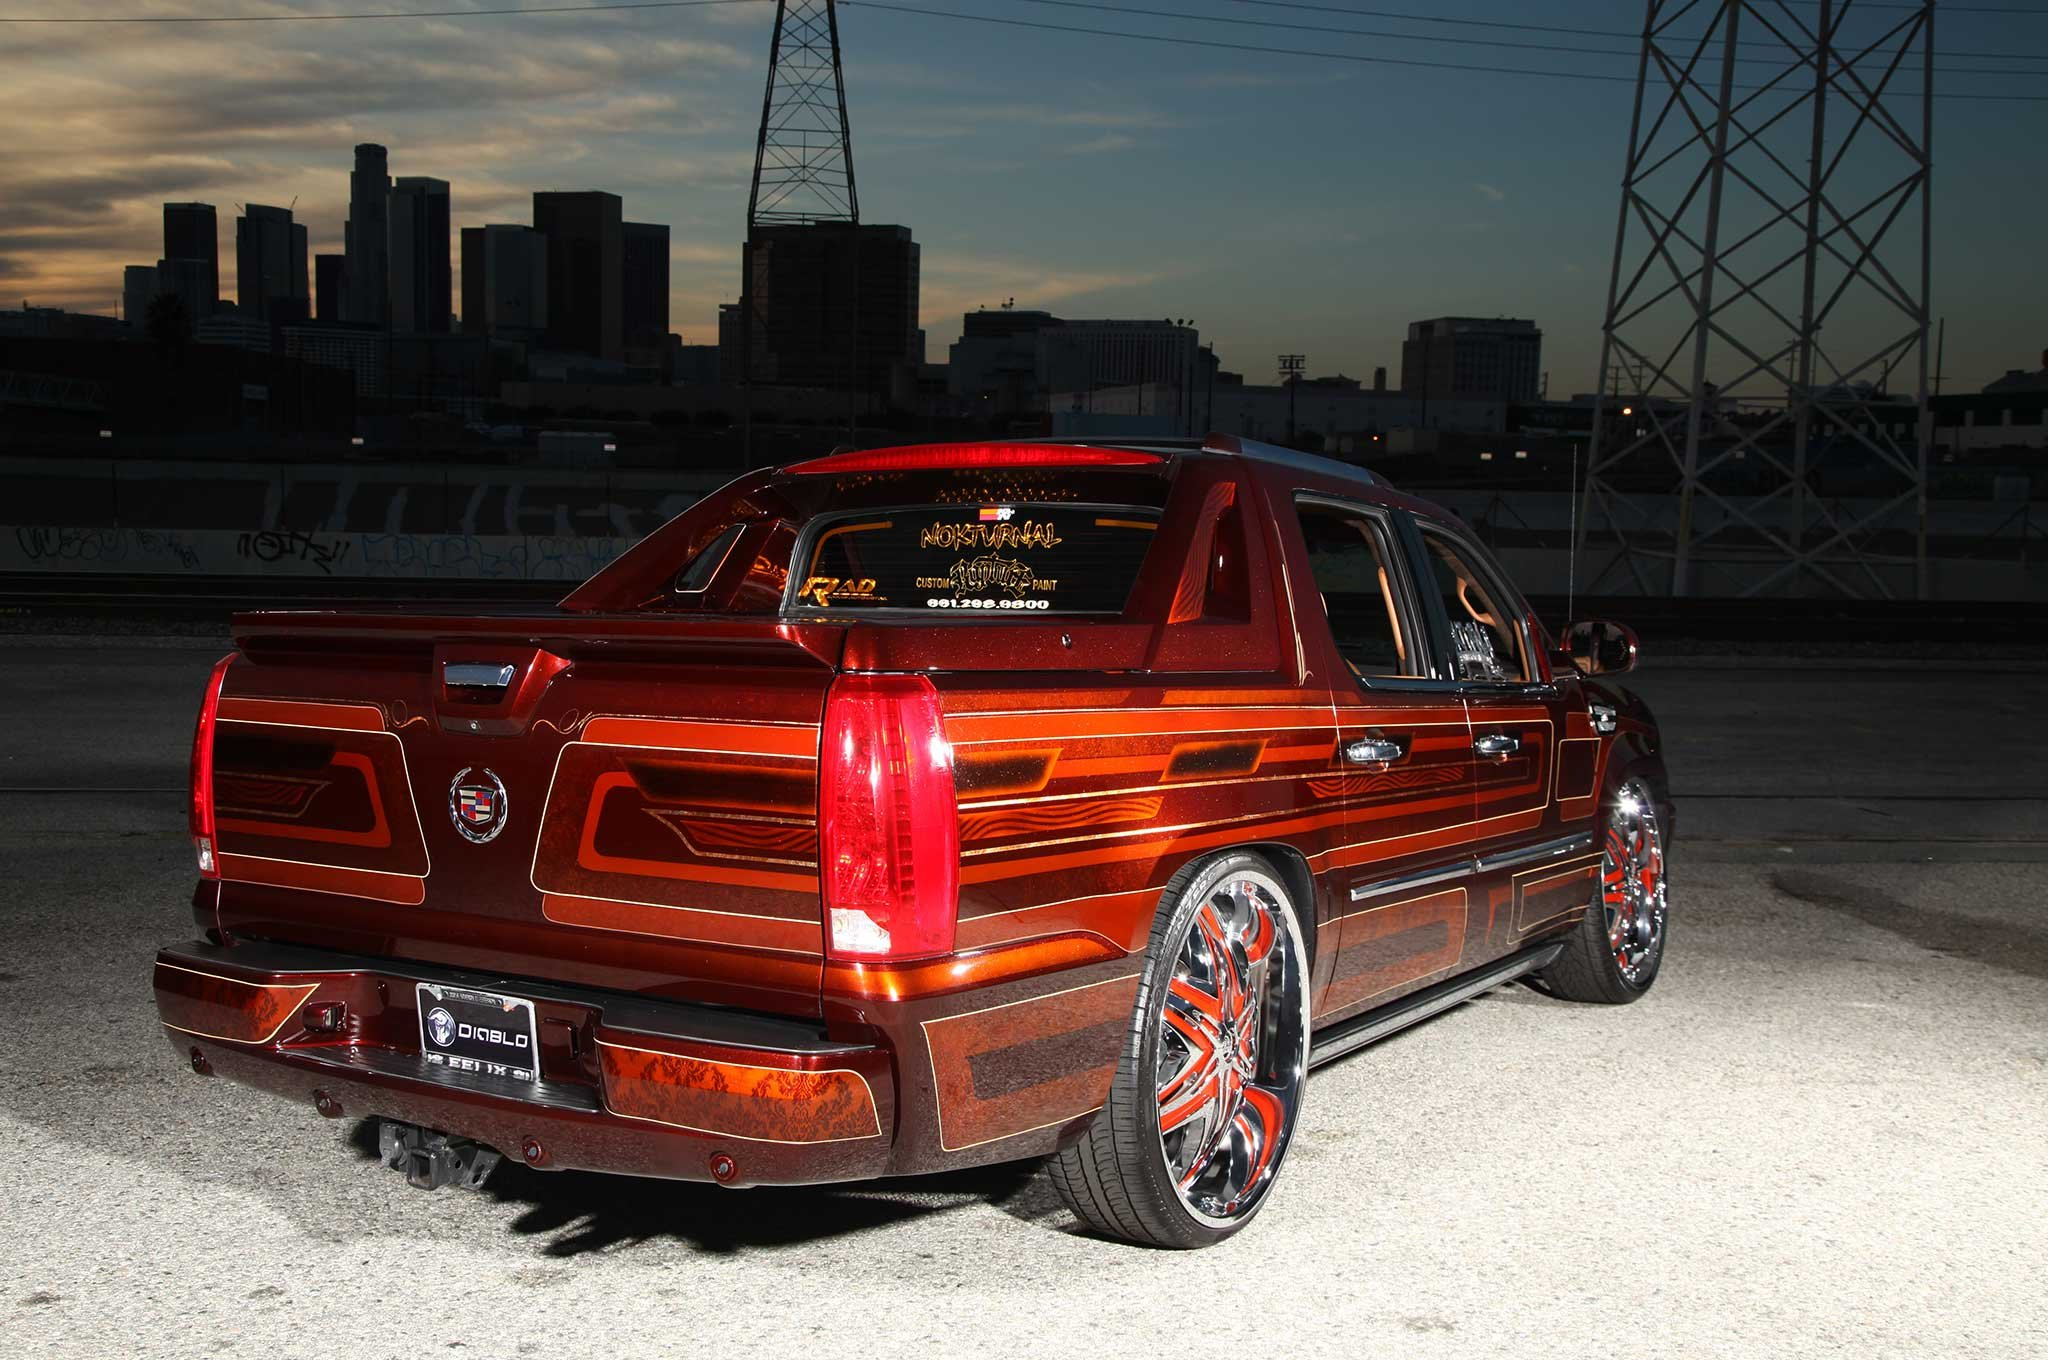 2008 cadillac escalade ext custom suv truck tuning hot rods rod gangsta lowrider wallpaper. Black Bedroom Furniture Sets. Home Design Ideas